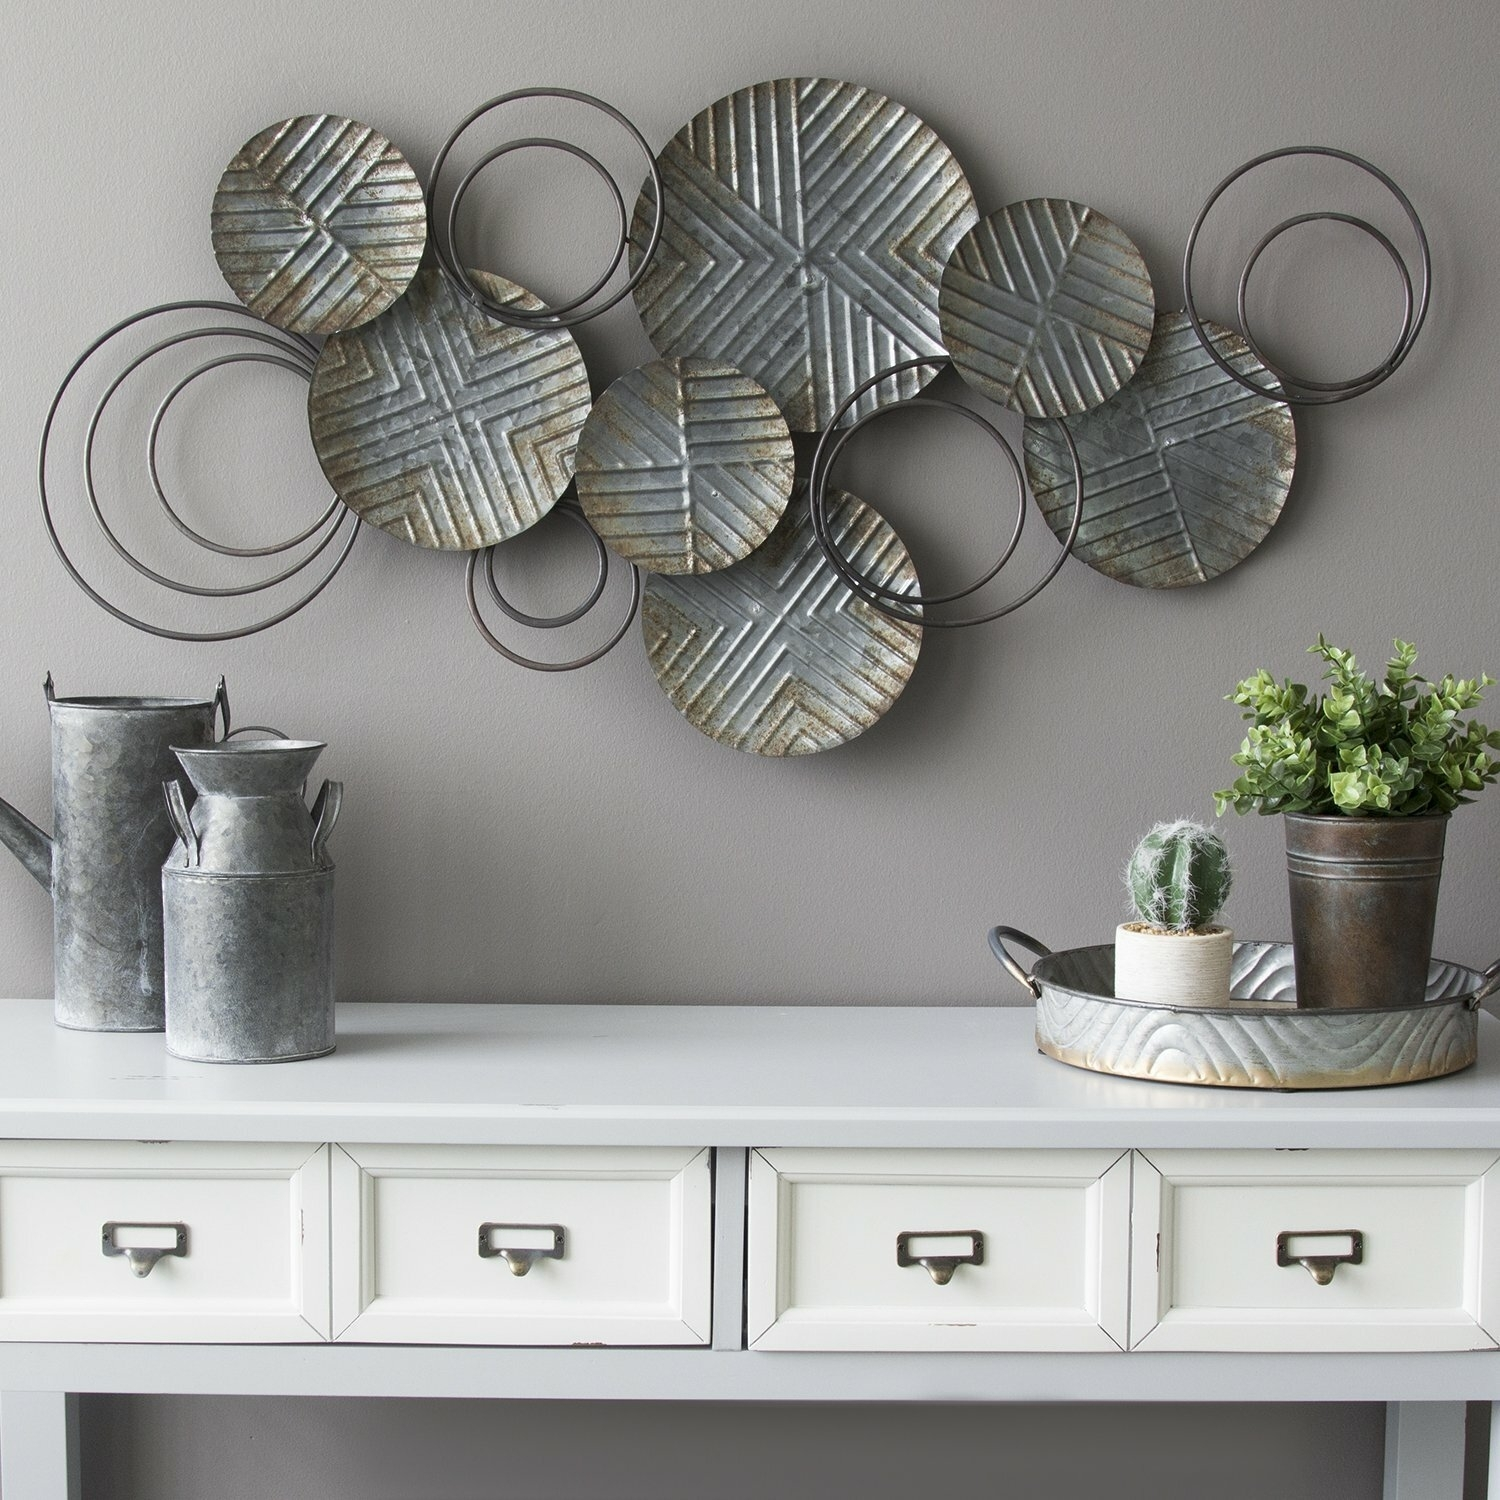 Decorative Plates To Hang On Wall You Ll Love In 2021 Visualhunt